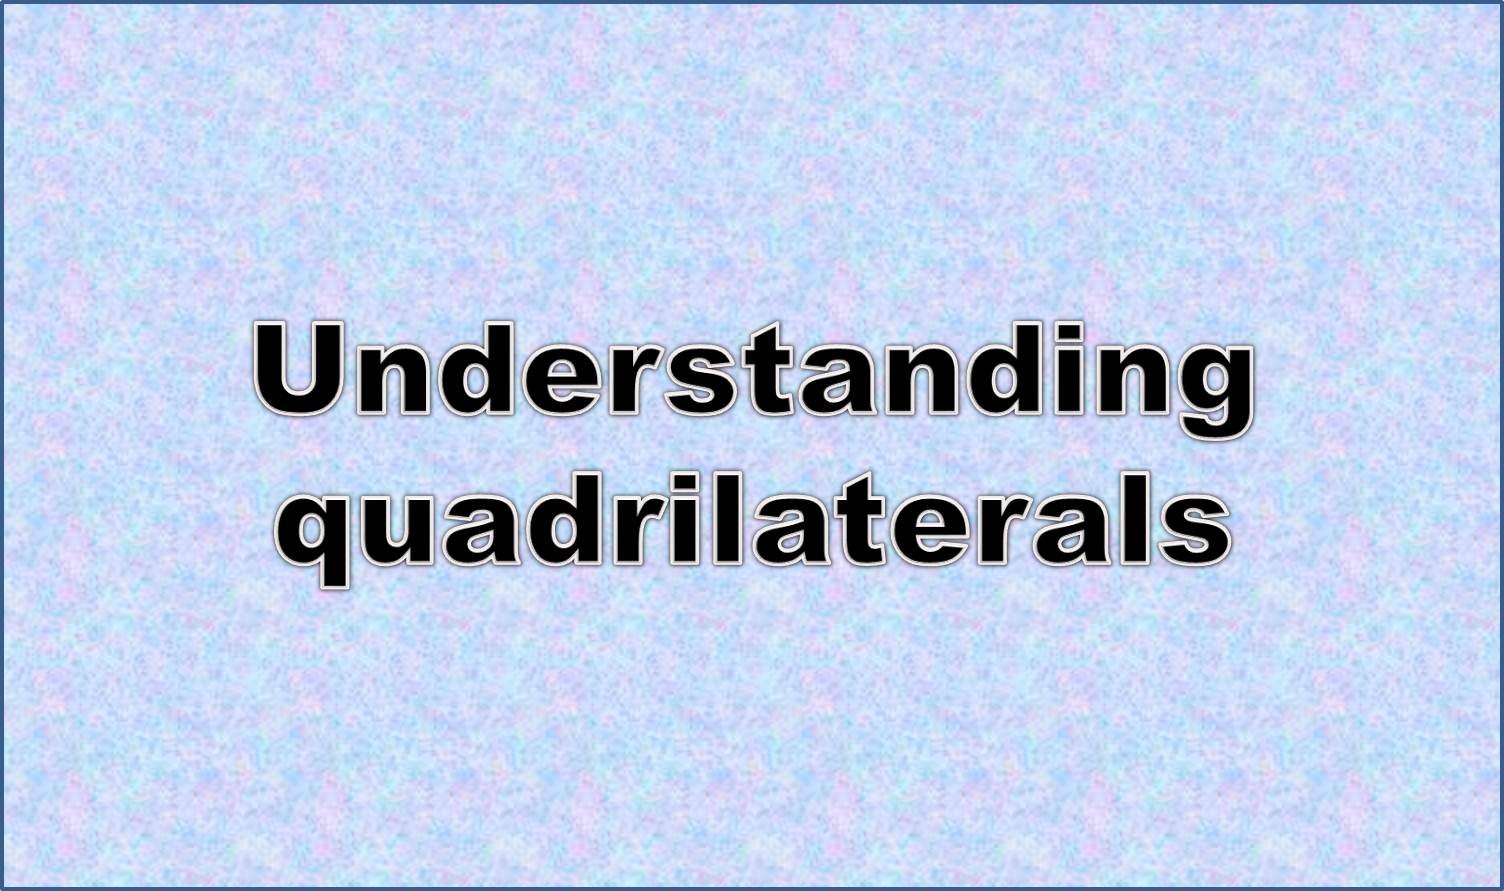 http://study.aisectonline.com/images/Whether a special quadrilateral can exist.jpg